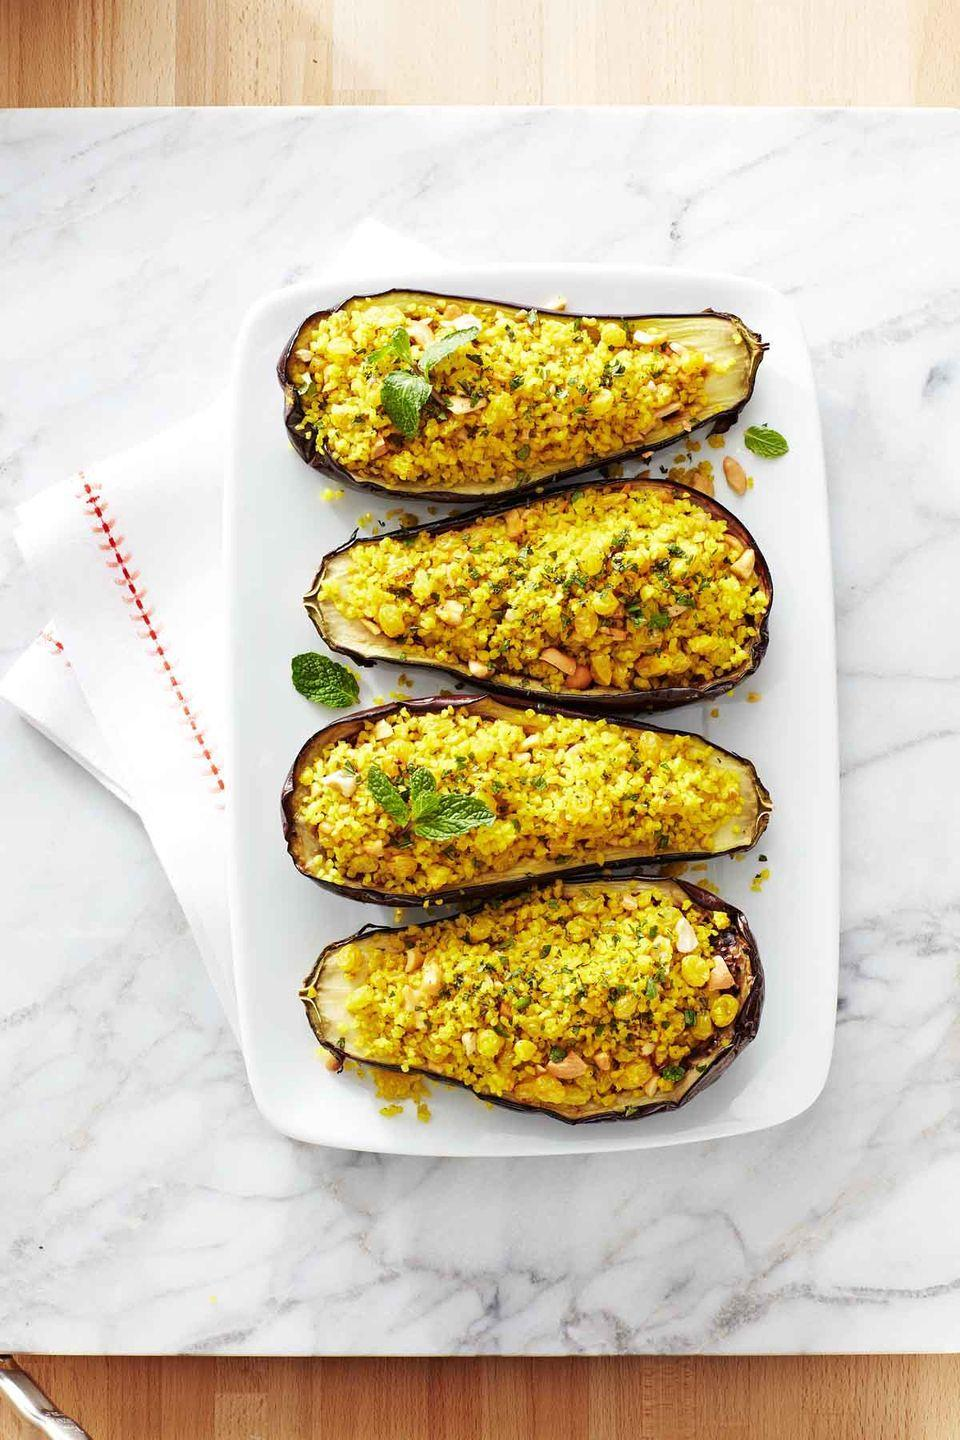 "<p>There are plenty of sweet and spicy flavors in these beautiful, presentation-worthy eggplant boats.</p><p><strong><a href=""https://www.countryliving.com/food-drinks/recipes/a34038/bulgur-cashew-stuffed-eggplant-recipe-ghk0215/"" rel=""nofollow noopener"" target=""_blank"" data-ylk=""slk:Get the recipe"" class=""link rapid-noclick-resp"">Get the recipe</a>.</strong></p><p><strong><a class=""link rapid-noclick-resp"" href=""https://www.amazon.com/Nordic-Ware-Natural-Aluminum-Commercial/dp/B0049C2S32/?tag=syn-yahoo-20&ascsubtag=%5Bartid%7C10050.g.34473510%5Bsrc%7Cyahoo-us"" rel=""nofollow noopener"" target=""_blank"" data-ylk=""slk:SHOP BAKING SHEETS"">SHOP BAKING SHEETS</a><br></strong></p>"